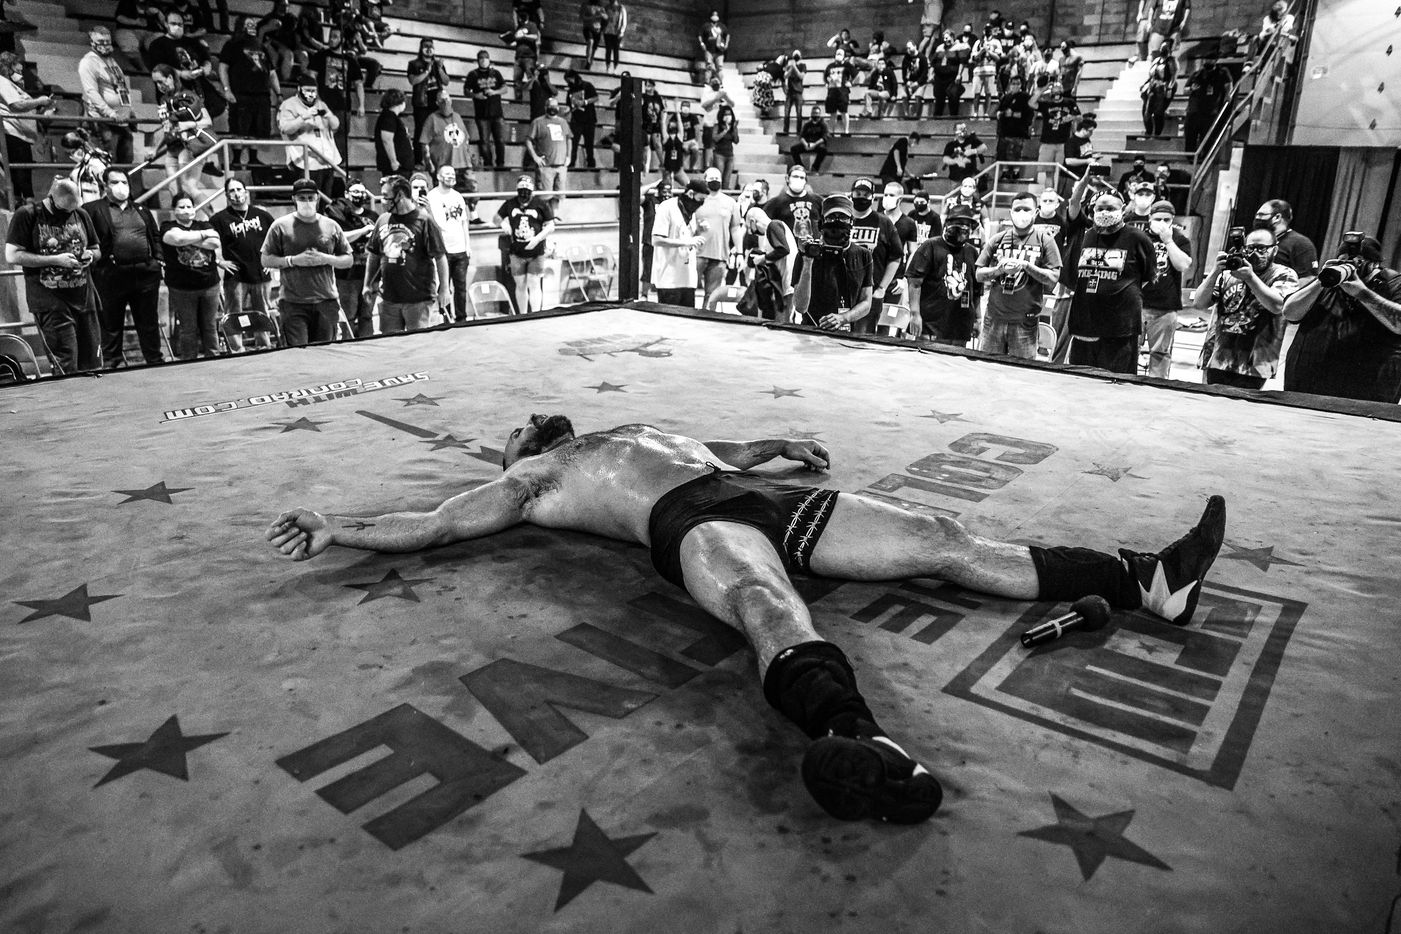 An exhausted Jon Moxley lies in the ring after his match at Game Changer Wrestling's Bloodsport on October 11, 2020. The portrait appears in the new, glossy art magazine about wrestling culture, Orange Crush, a passion project edited by art adviser and fan Adam Abdalla.